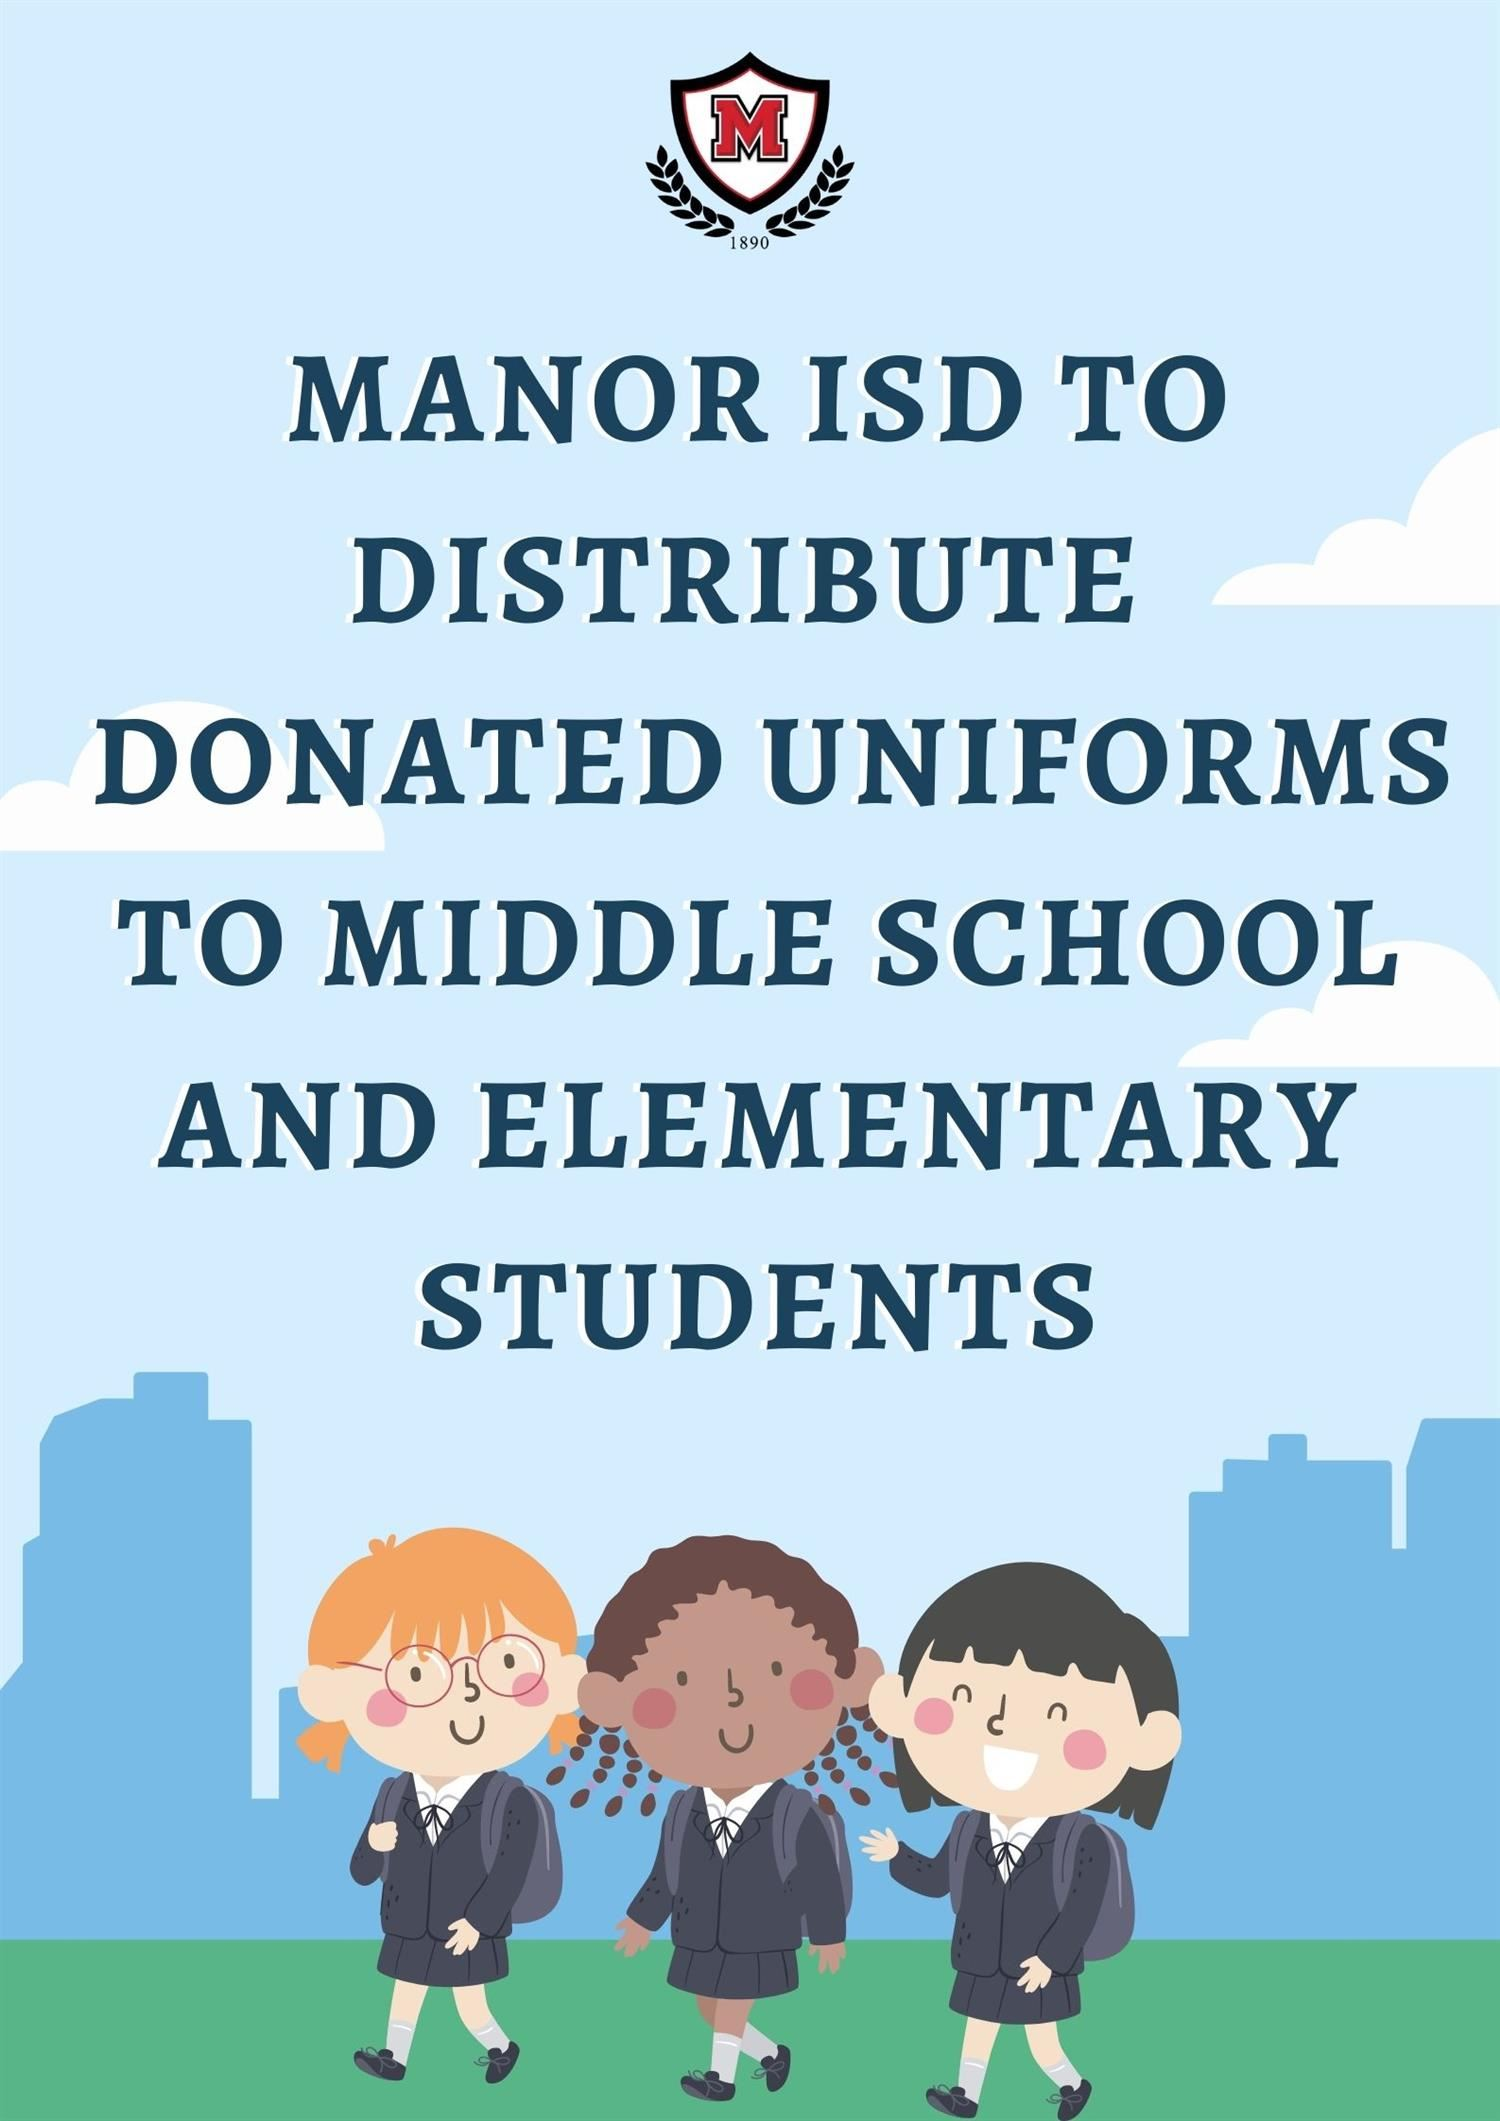 Manor ISD to Distribute Donated Uniforms to Middle School and Elementary Students